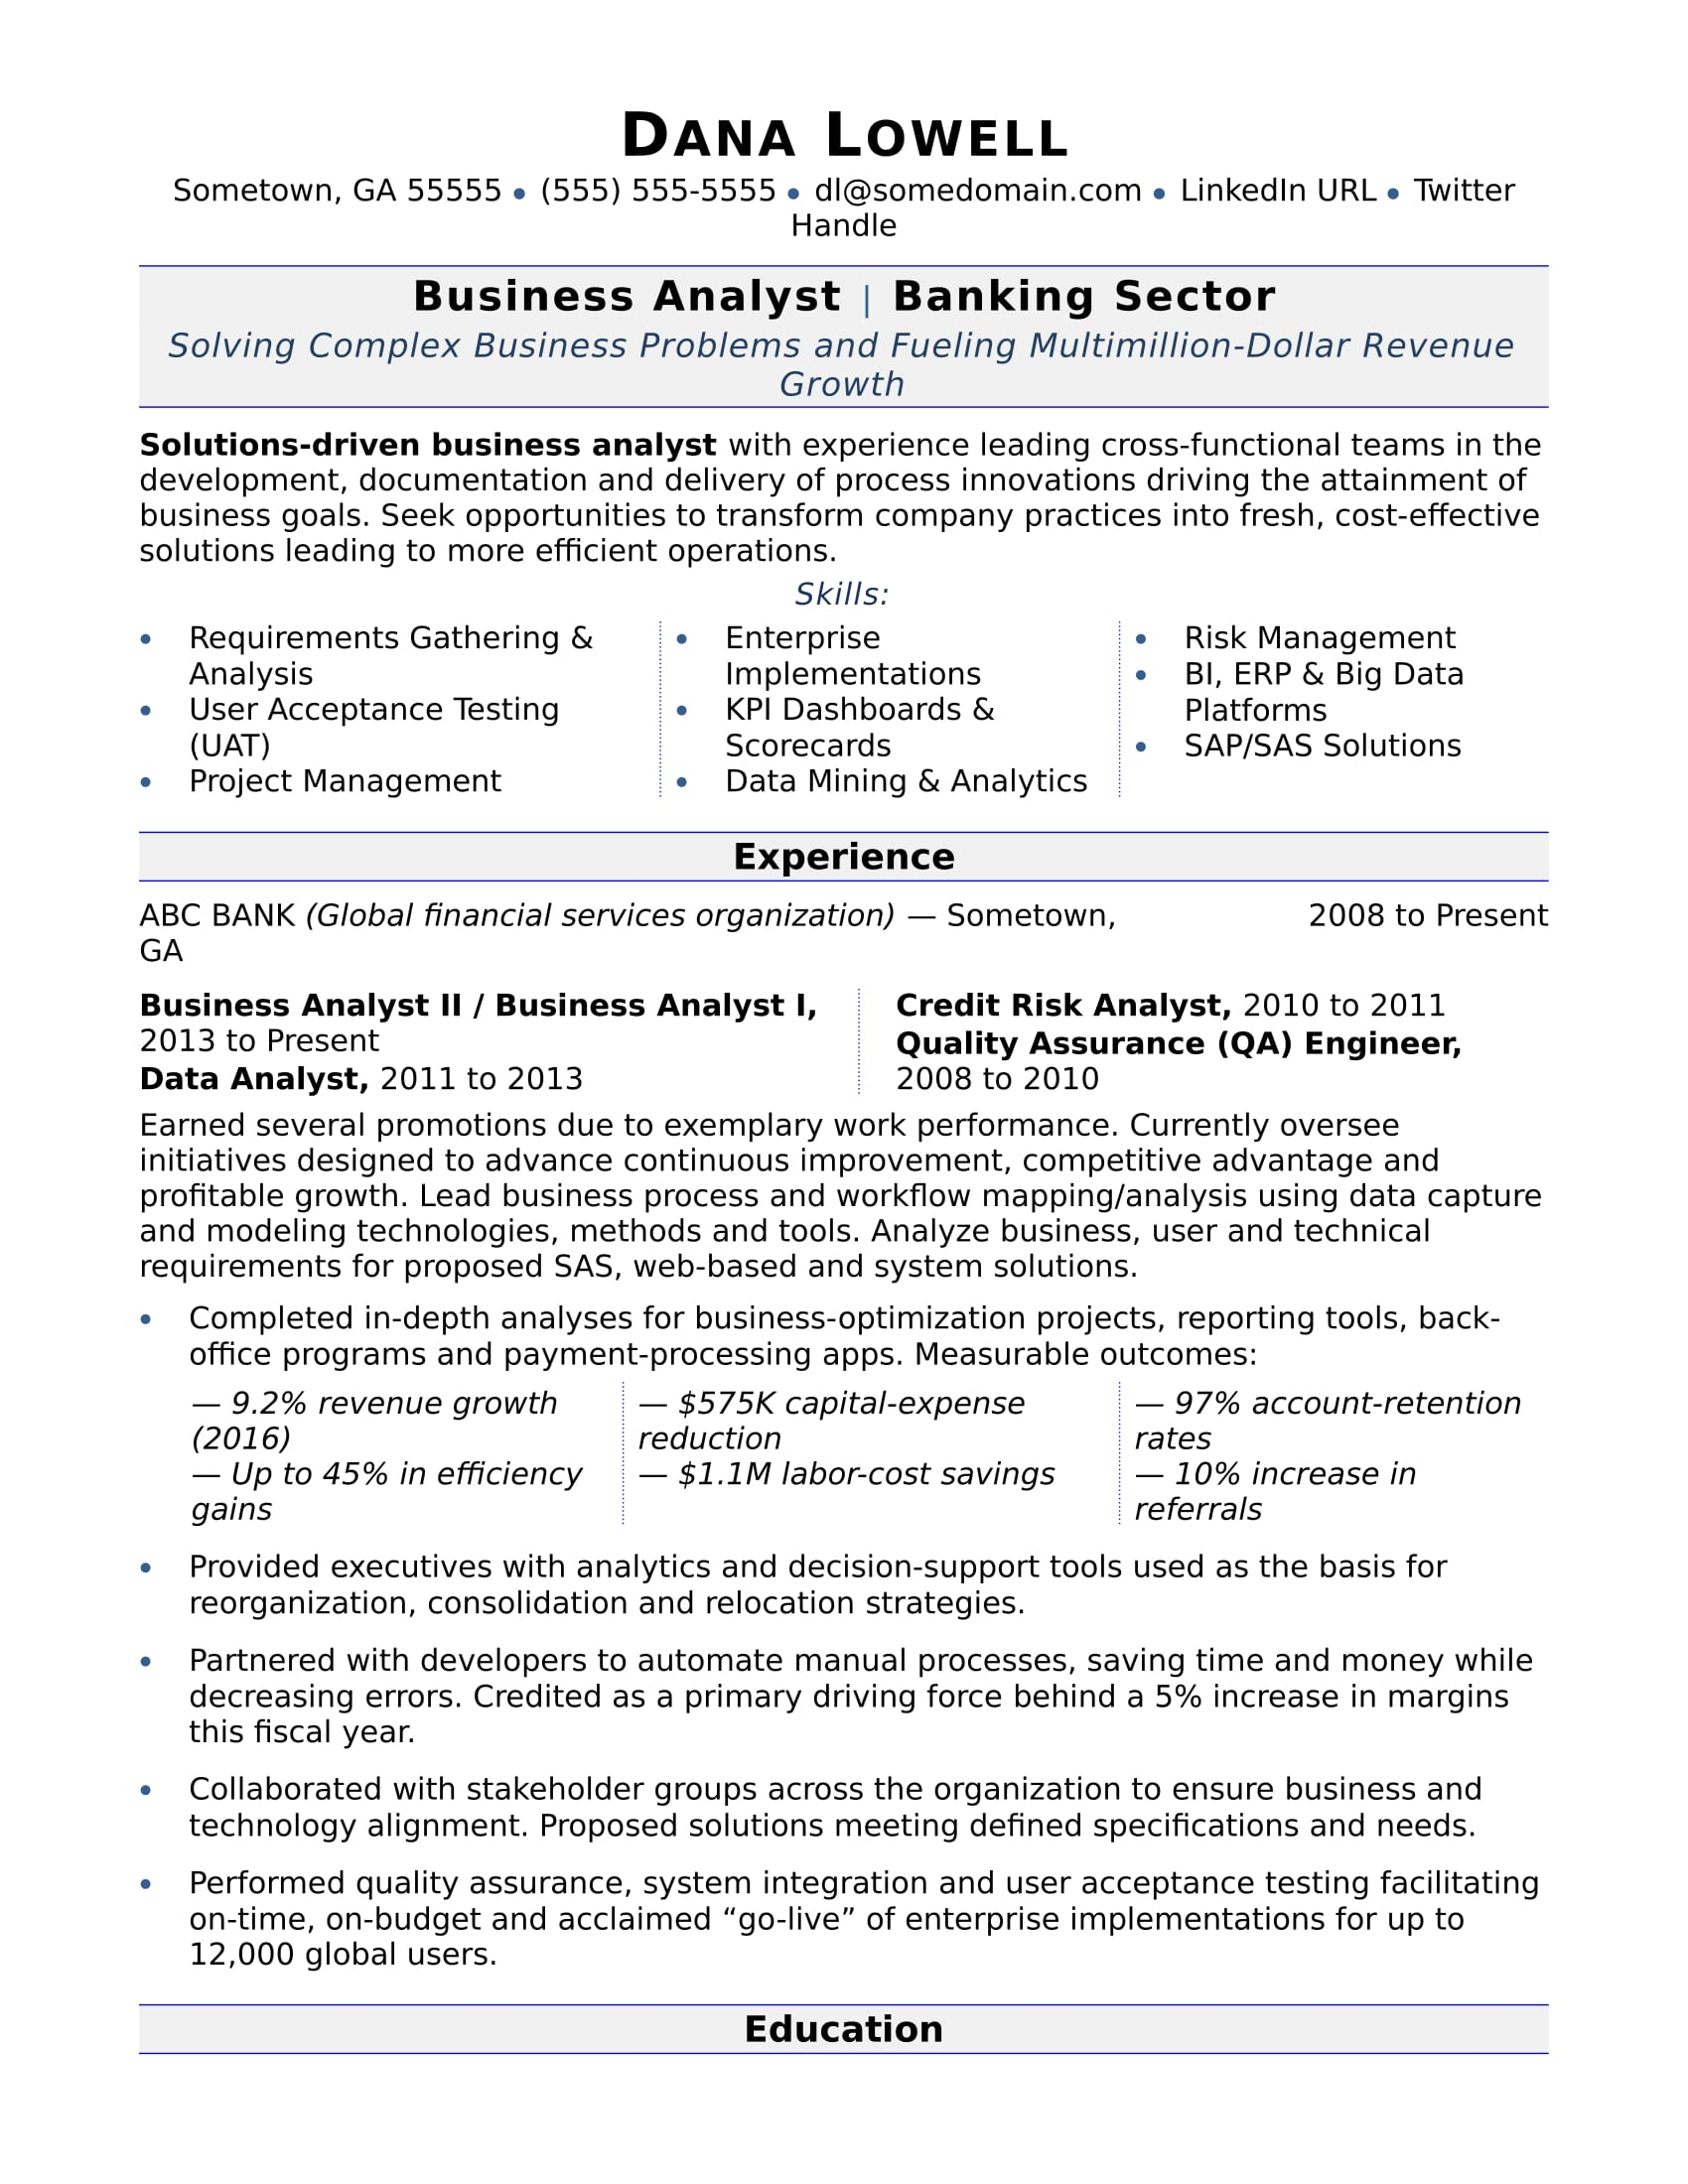 Business analyst resume sample monster business analyst resume sample flashek